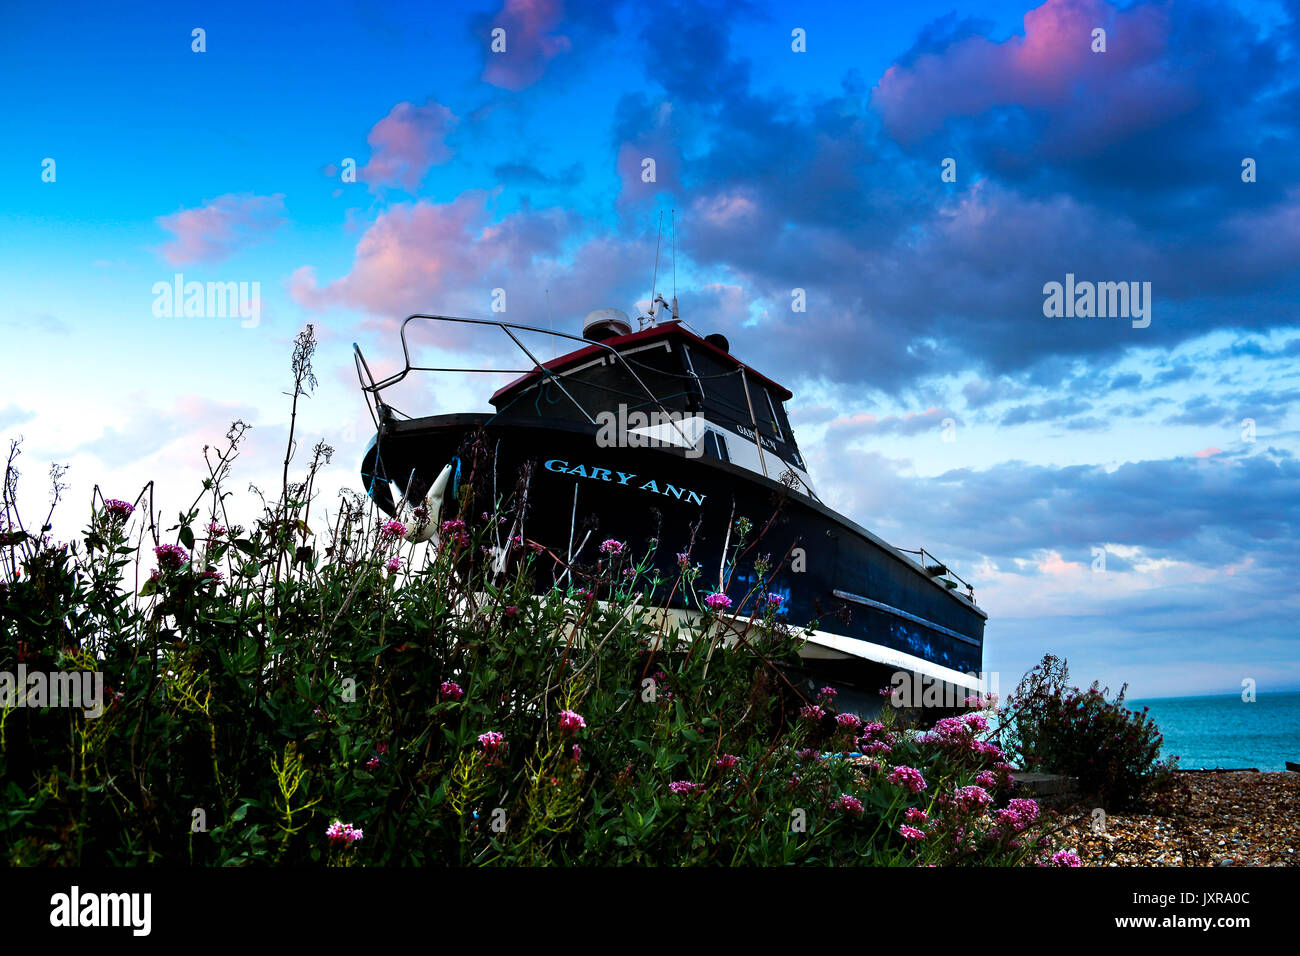 Gary Ann boat beached at Deal - Stock Image